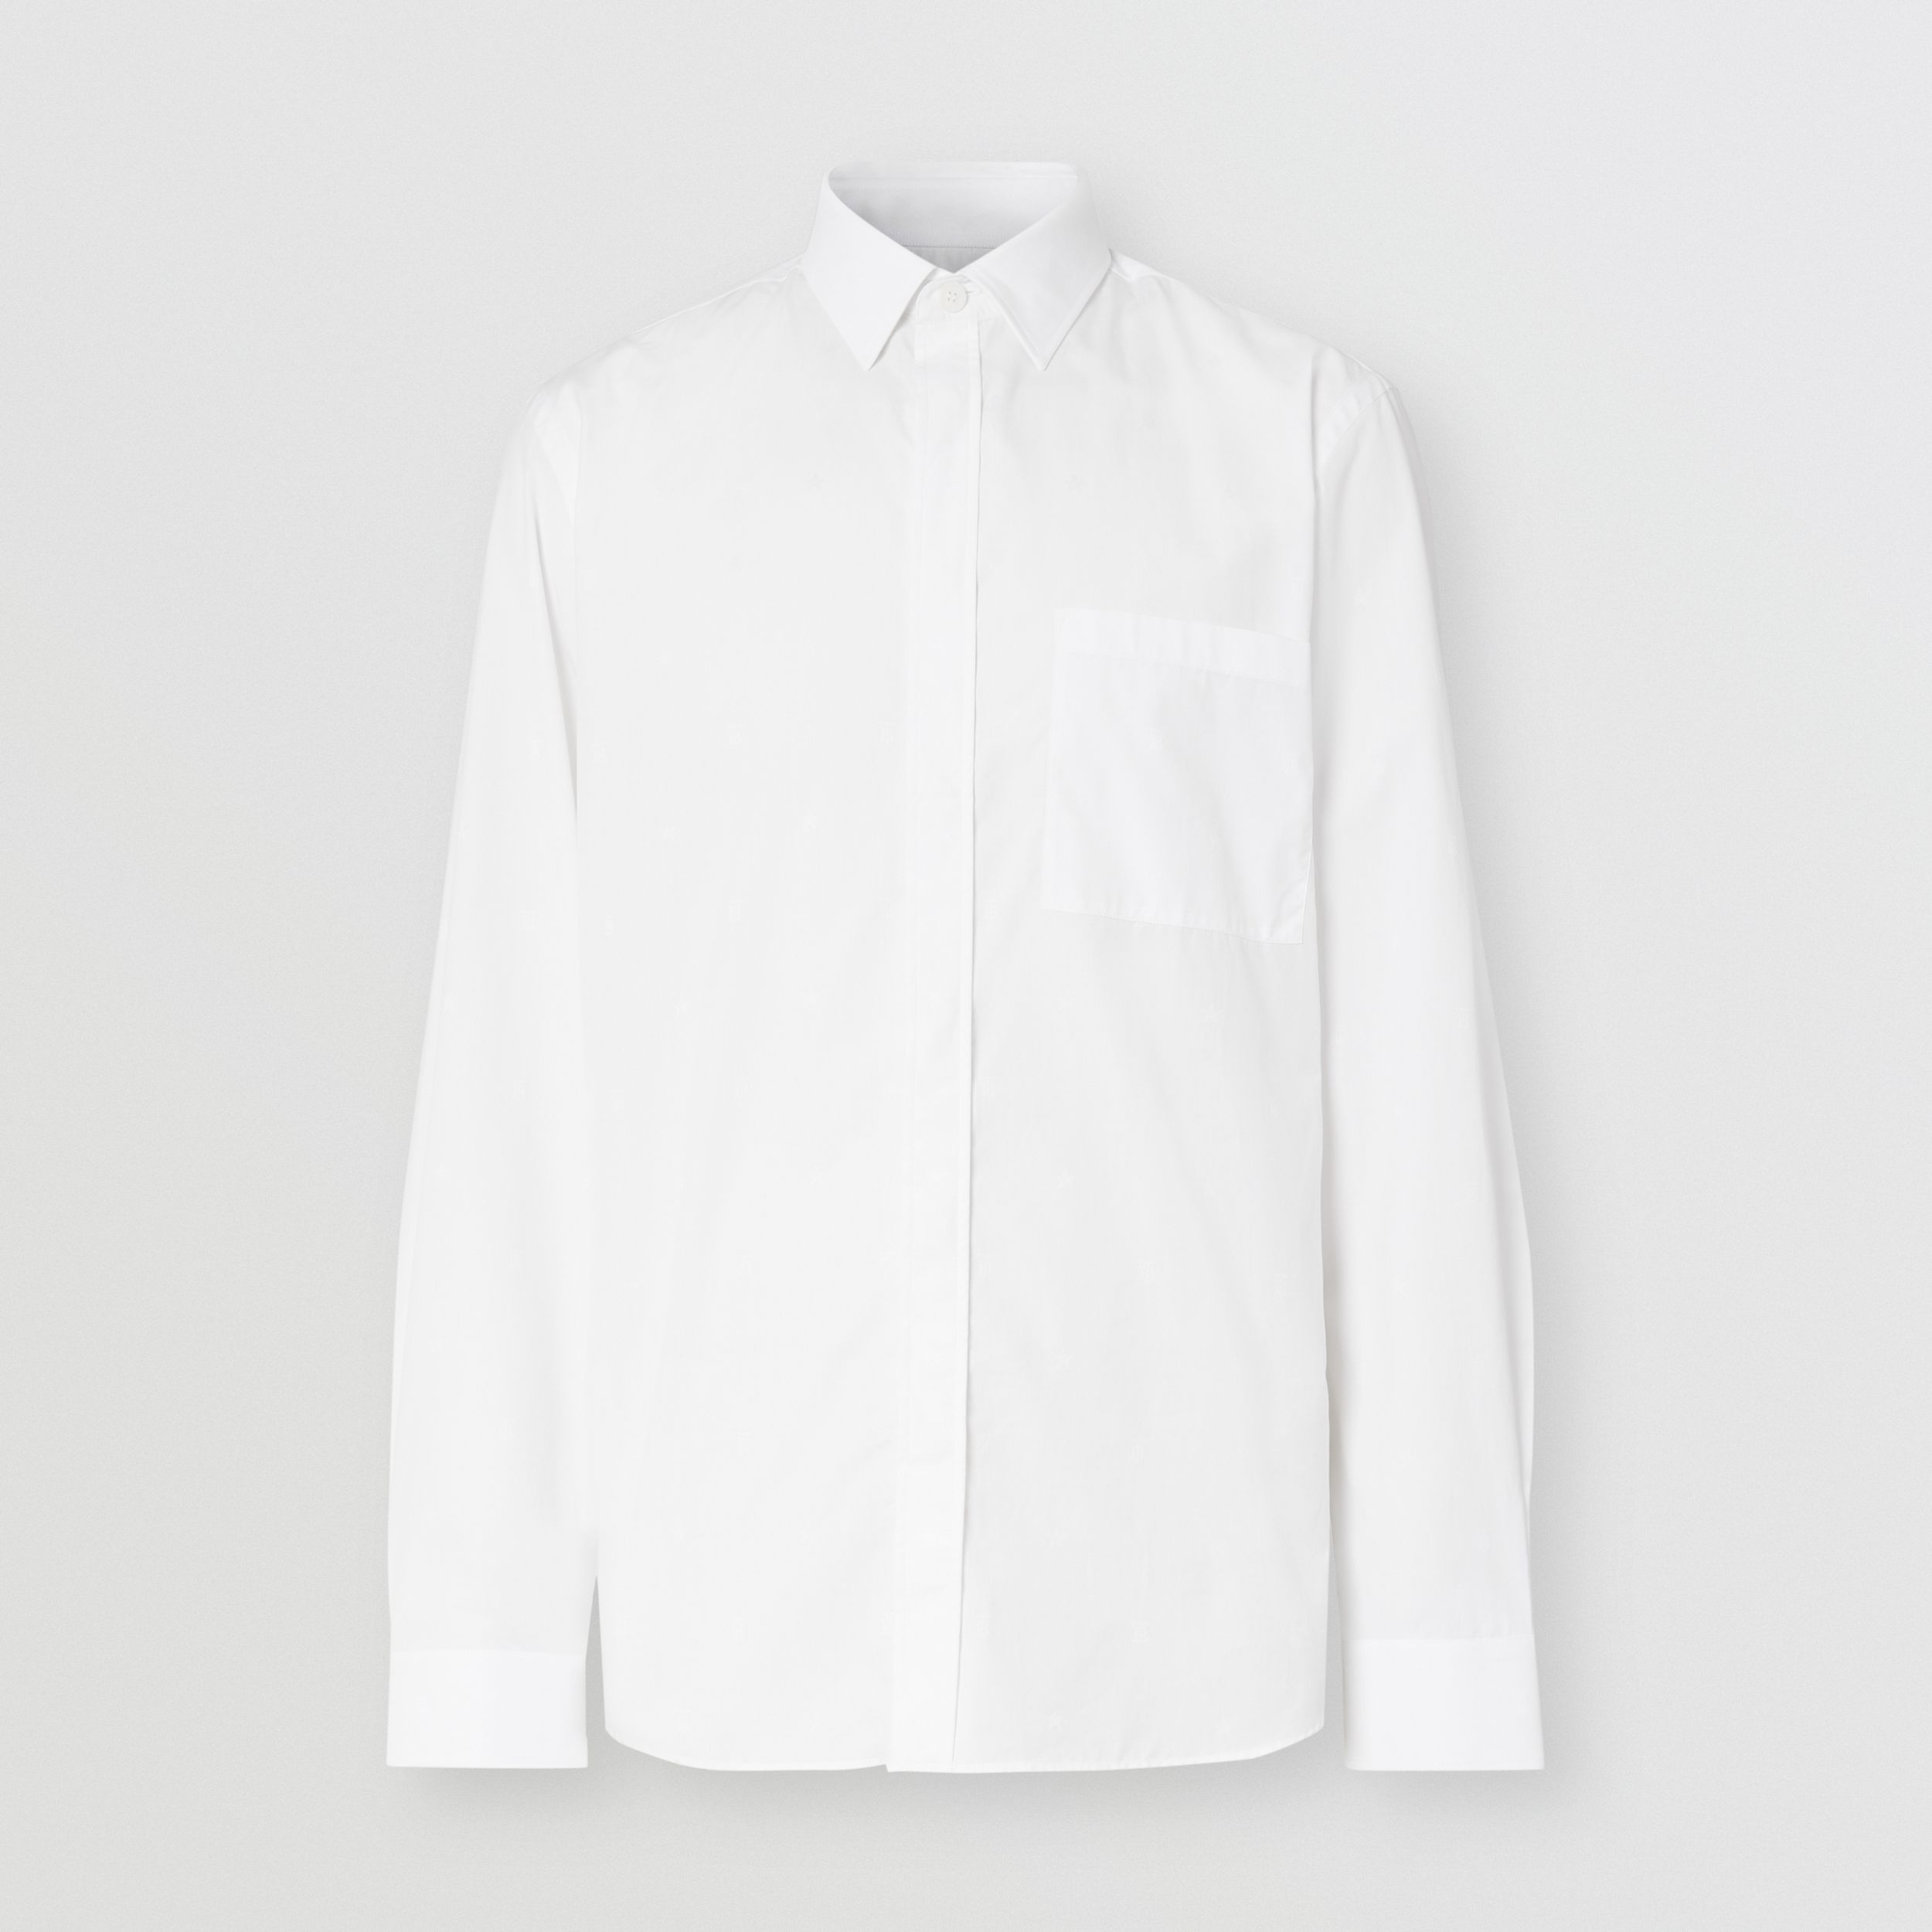 Slim Fit Star and Monogram Motif Cotton Shirt in White - Men | Burberry - 4